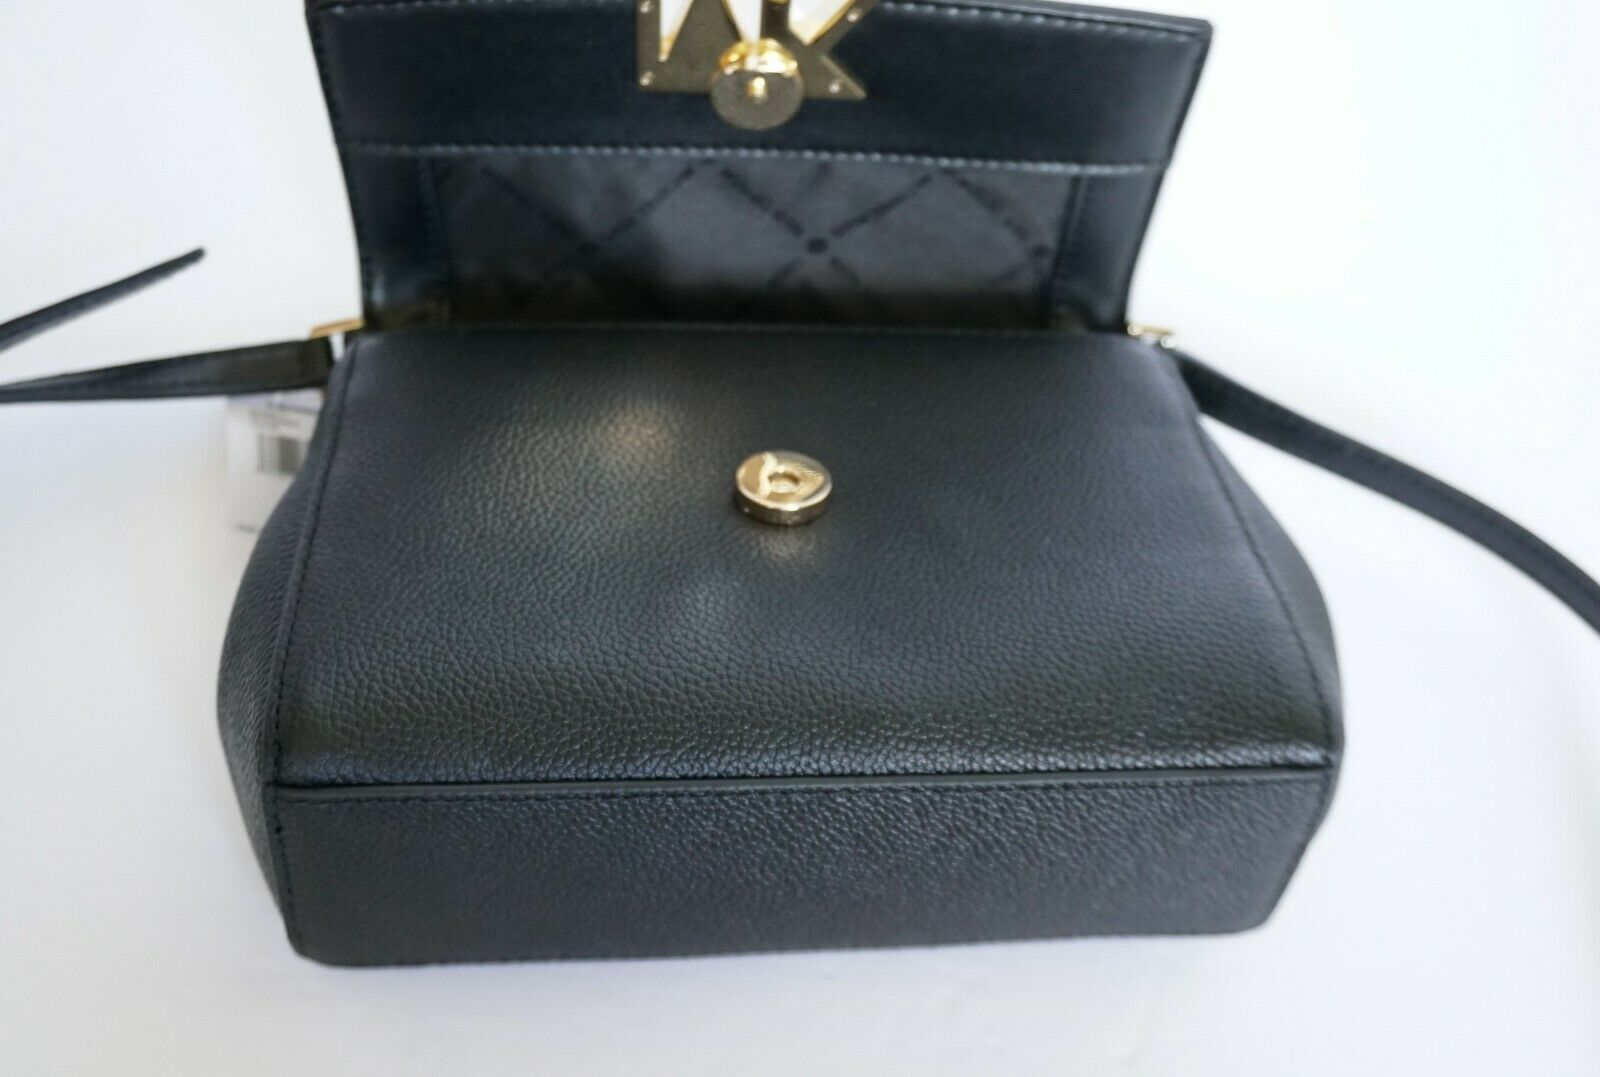 NWT MICHAEL KORS MONTGOMERY SMALL LEATHER CROSSBODY BAG BLACK image 6